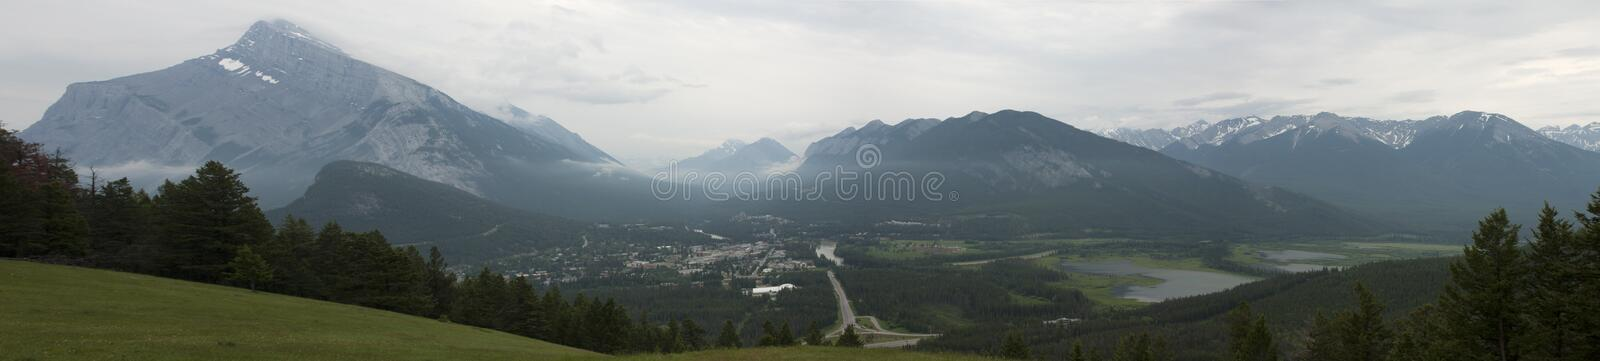 Mountains in the Background and Green Meadows during Daytime royalty free stock photography